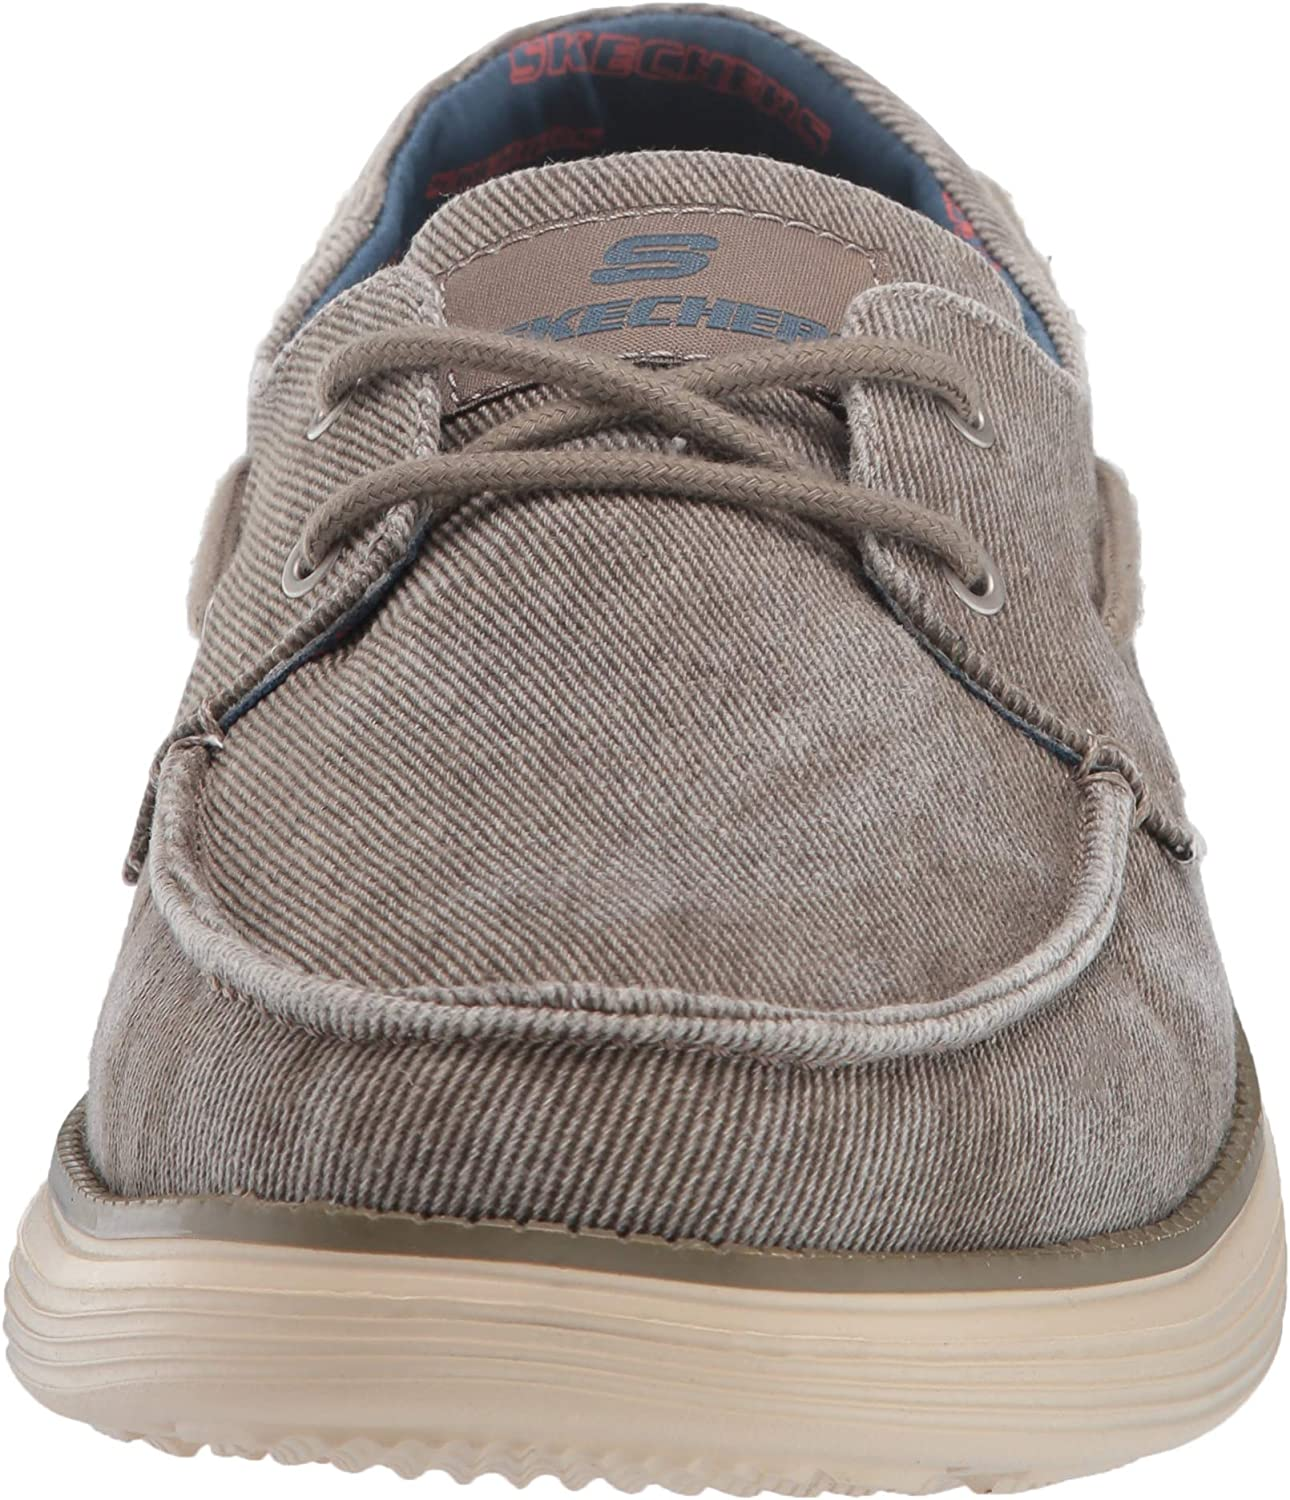 escala Adulto Matar  Skechers Men's Status 2.0-Lorano Moc Toe Canvas Deck Shoe Moccasin, 7/12 UK  | Loafers & Slip-Ons - Amazon.com